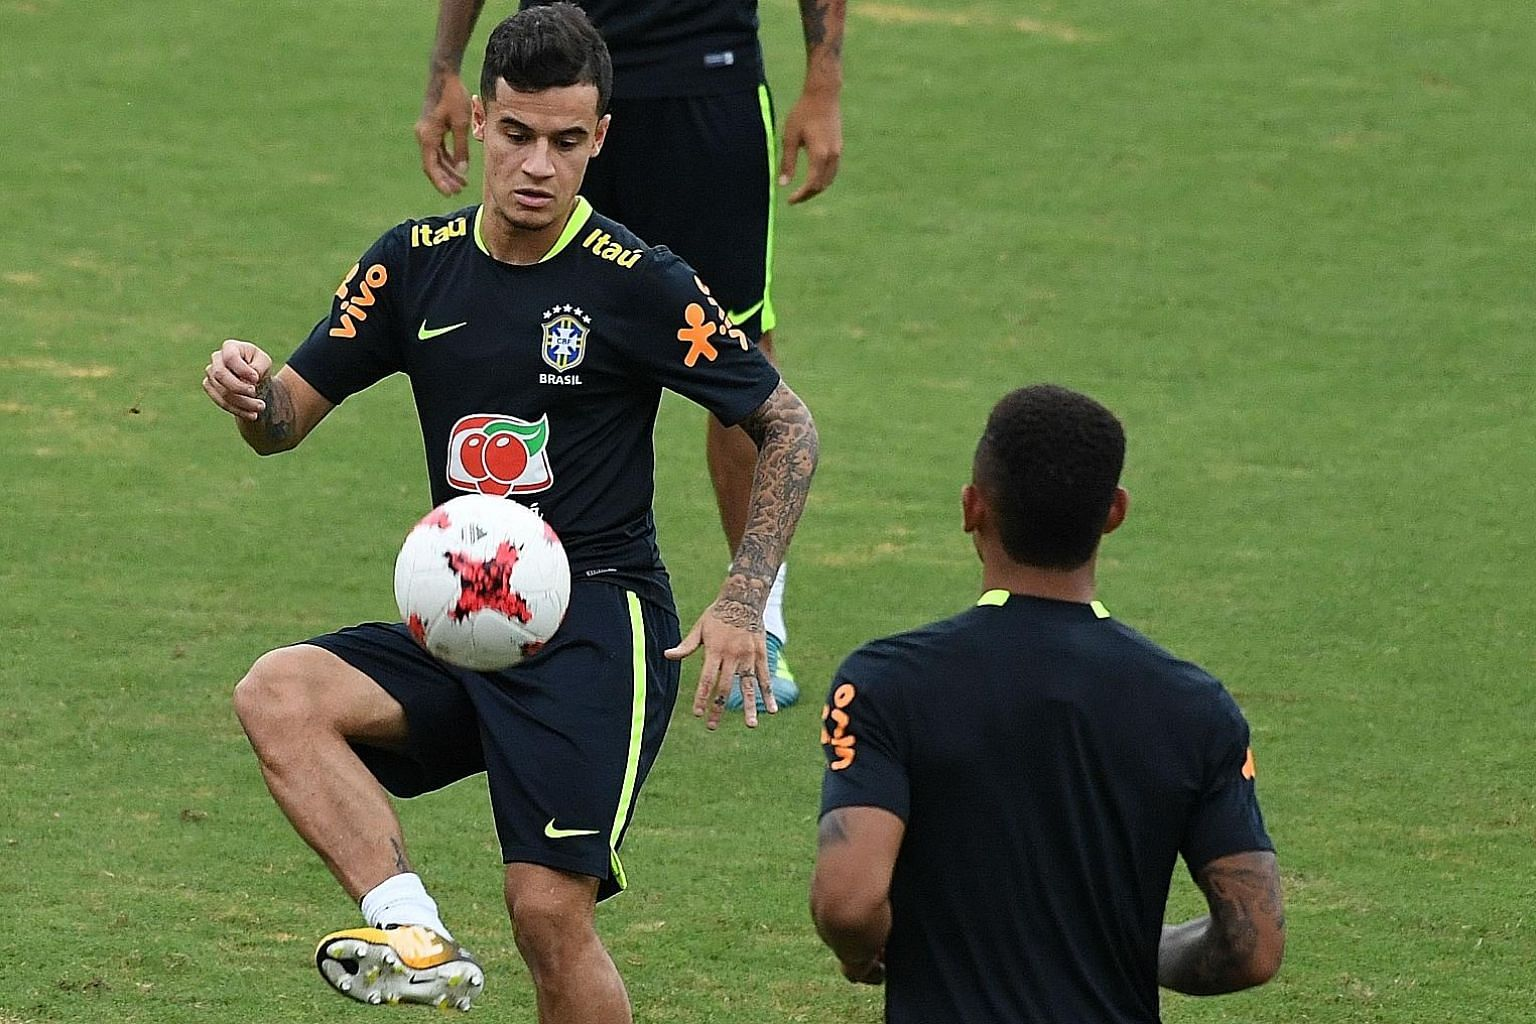 Philippe Coutinho training in Barranquilla, Colombia ahead of Brazil's World Cup qualifier on Tuesday. He came on as a sub against both Colombia and Ecuador earlier but Liverpool manager Jurgen Klopp wants him to be better conditioned before returnin